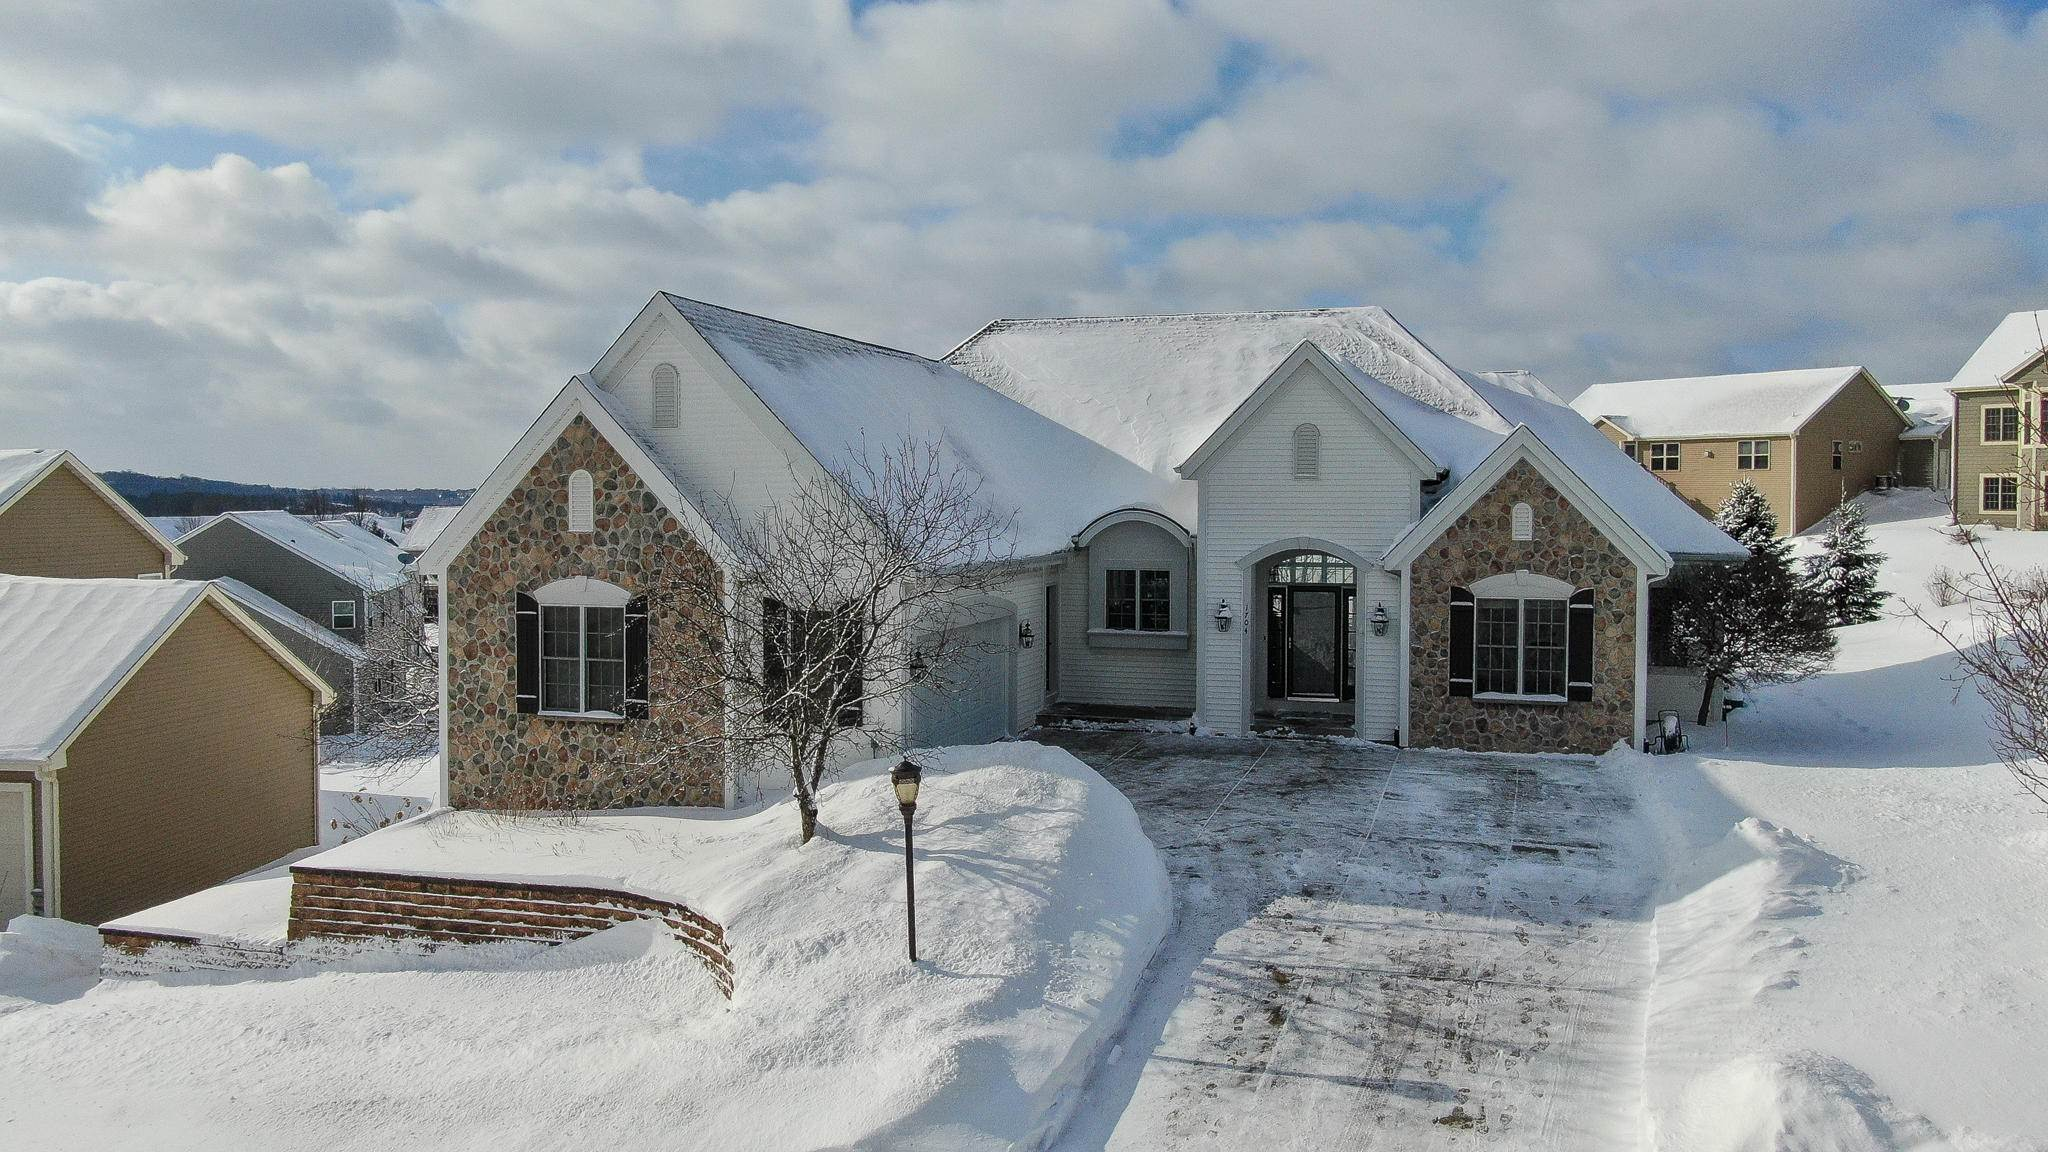 Single Family Homes for Sale at 1704 Glacier Ridge Road Waukesha, Wisconsin 53188 United States